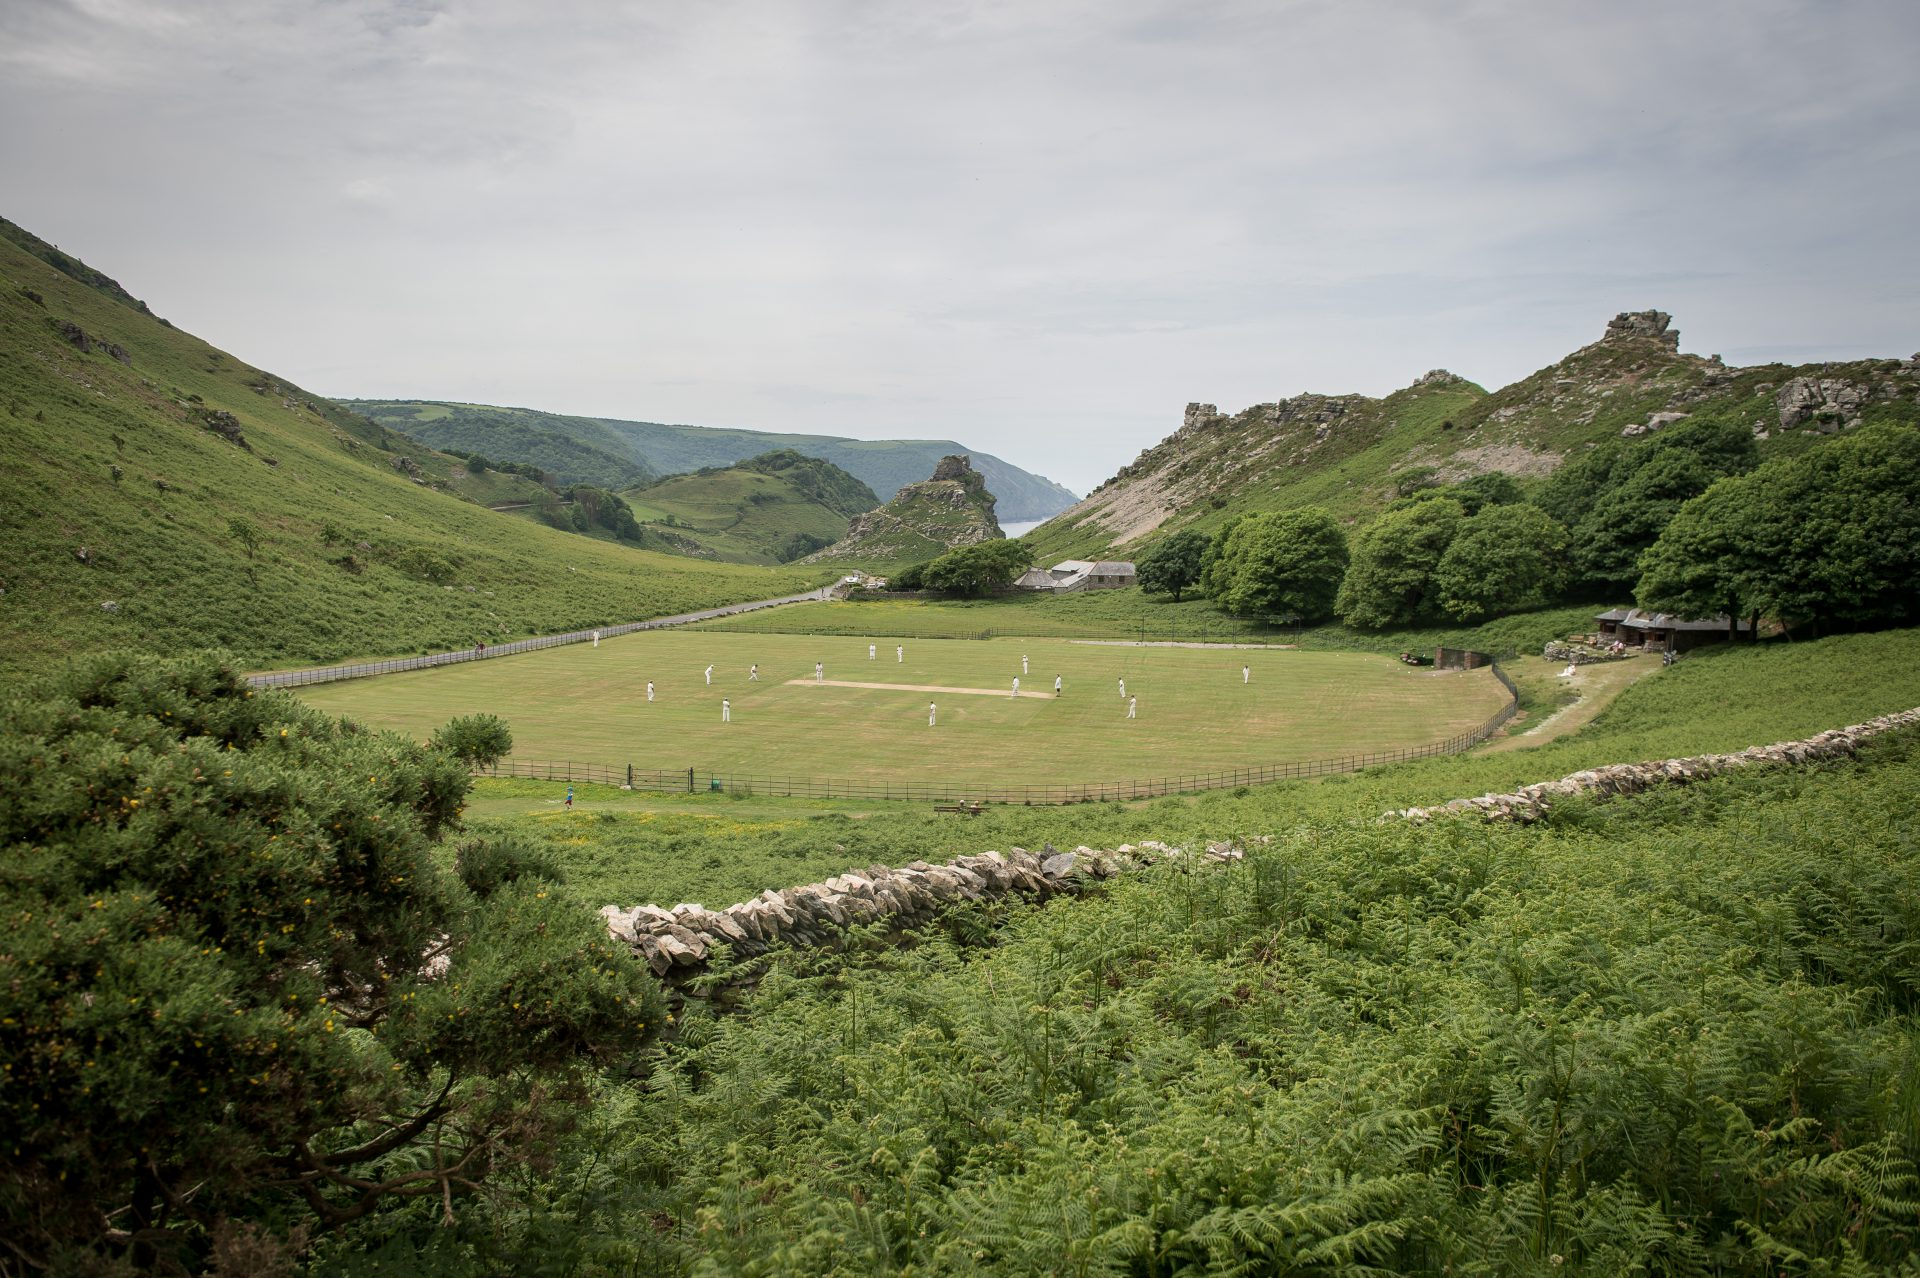 Match play on the pitch during an annual friendly match between Cravens Cavaliers and Lynton & Lynmouth Cricket Club at their ground based inside the Valley of Rocks, North Devon. Credit:  Ben Birchall/PA Archive/PA Images